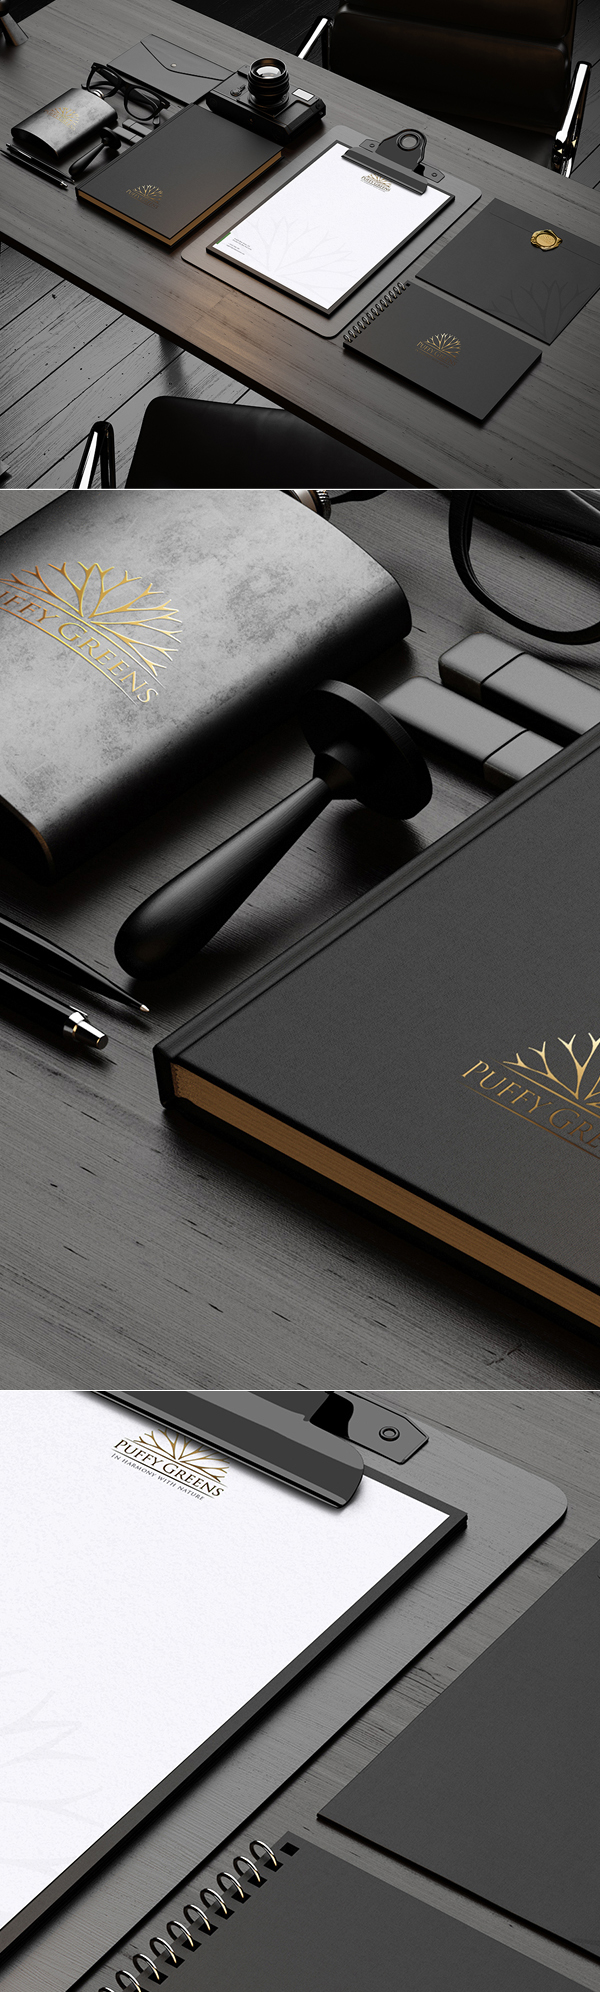 Dark Stationery Mockup PSD Free Download